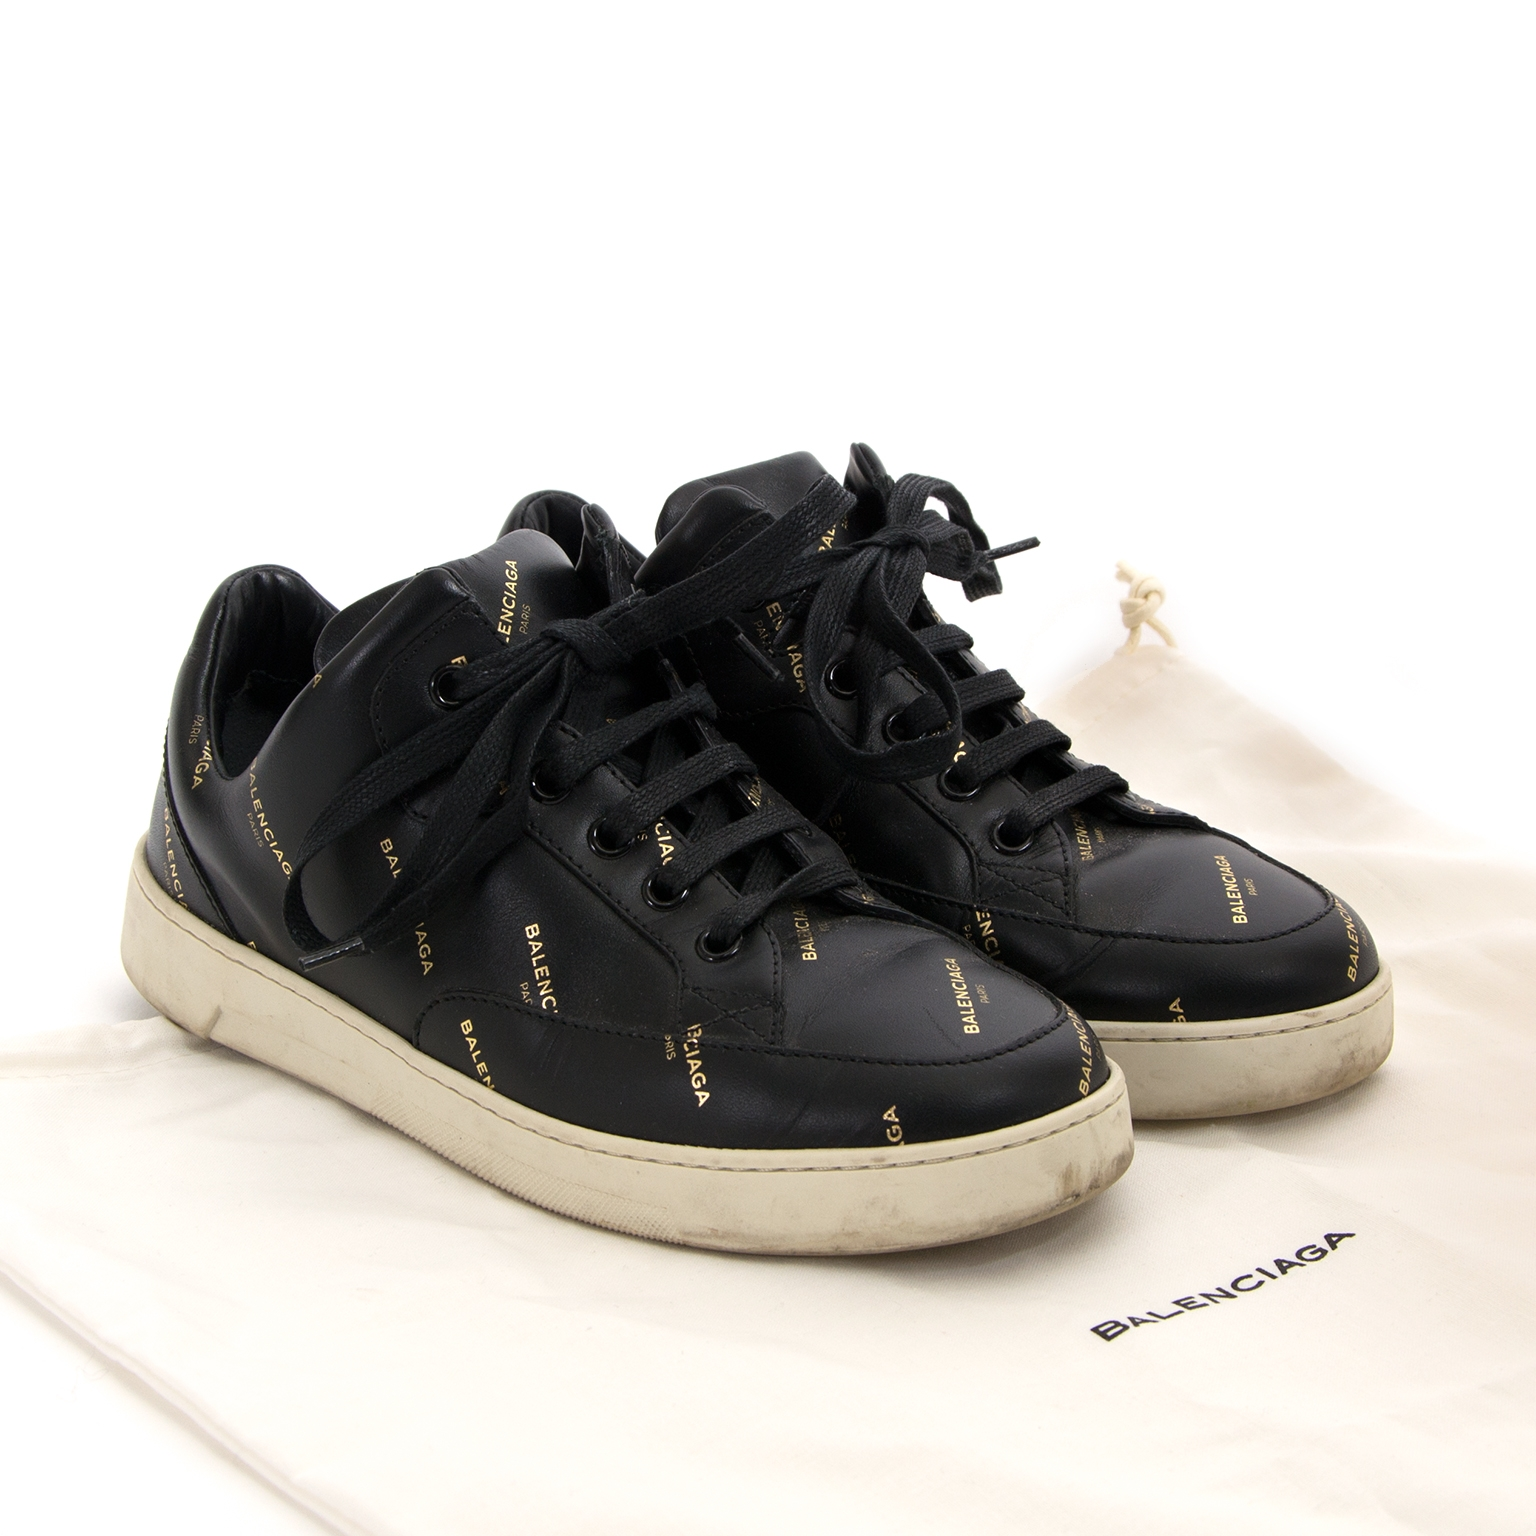 balenciaga black base trainers now for sale at labellov vintage fashion webshop belgium